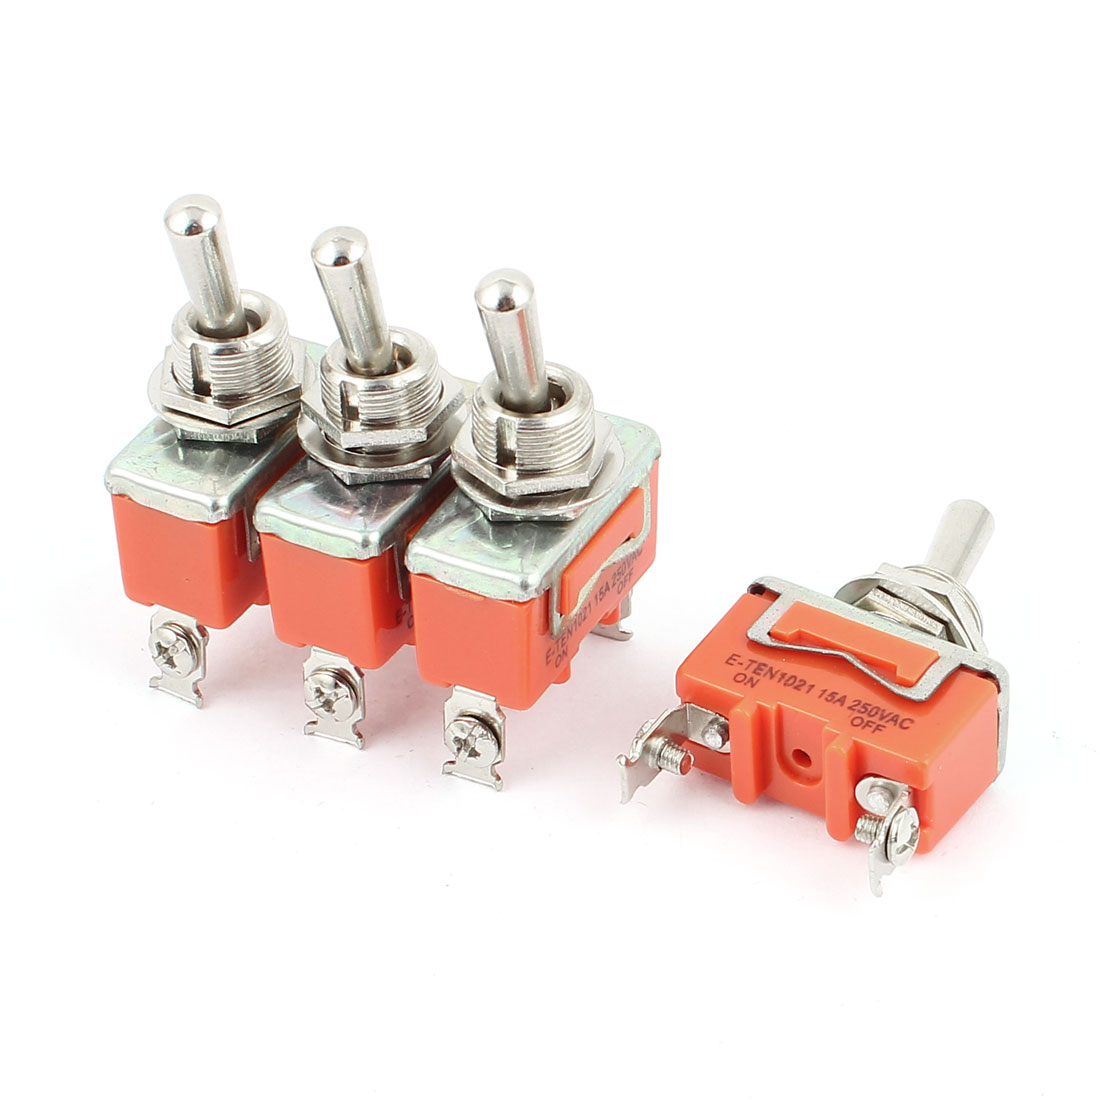 AC 250V 15A 2 Screw Terminals ON-OFF 2 Position SPST Toggle Switch 4 Pcs